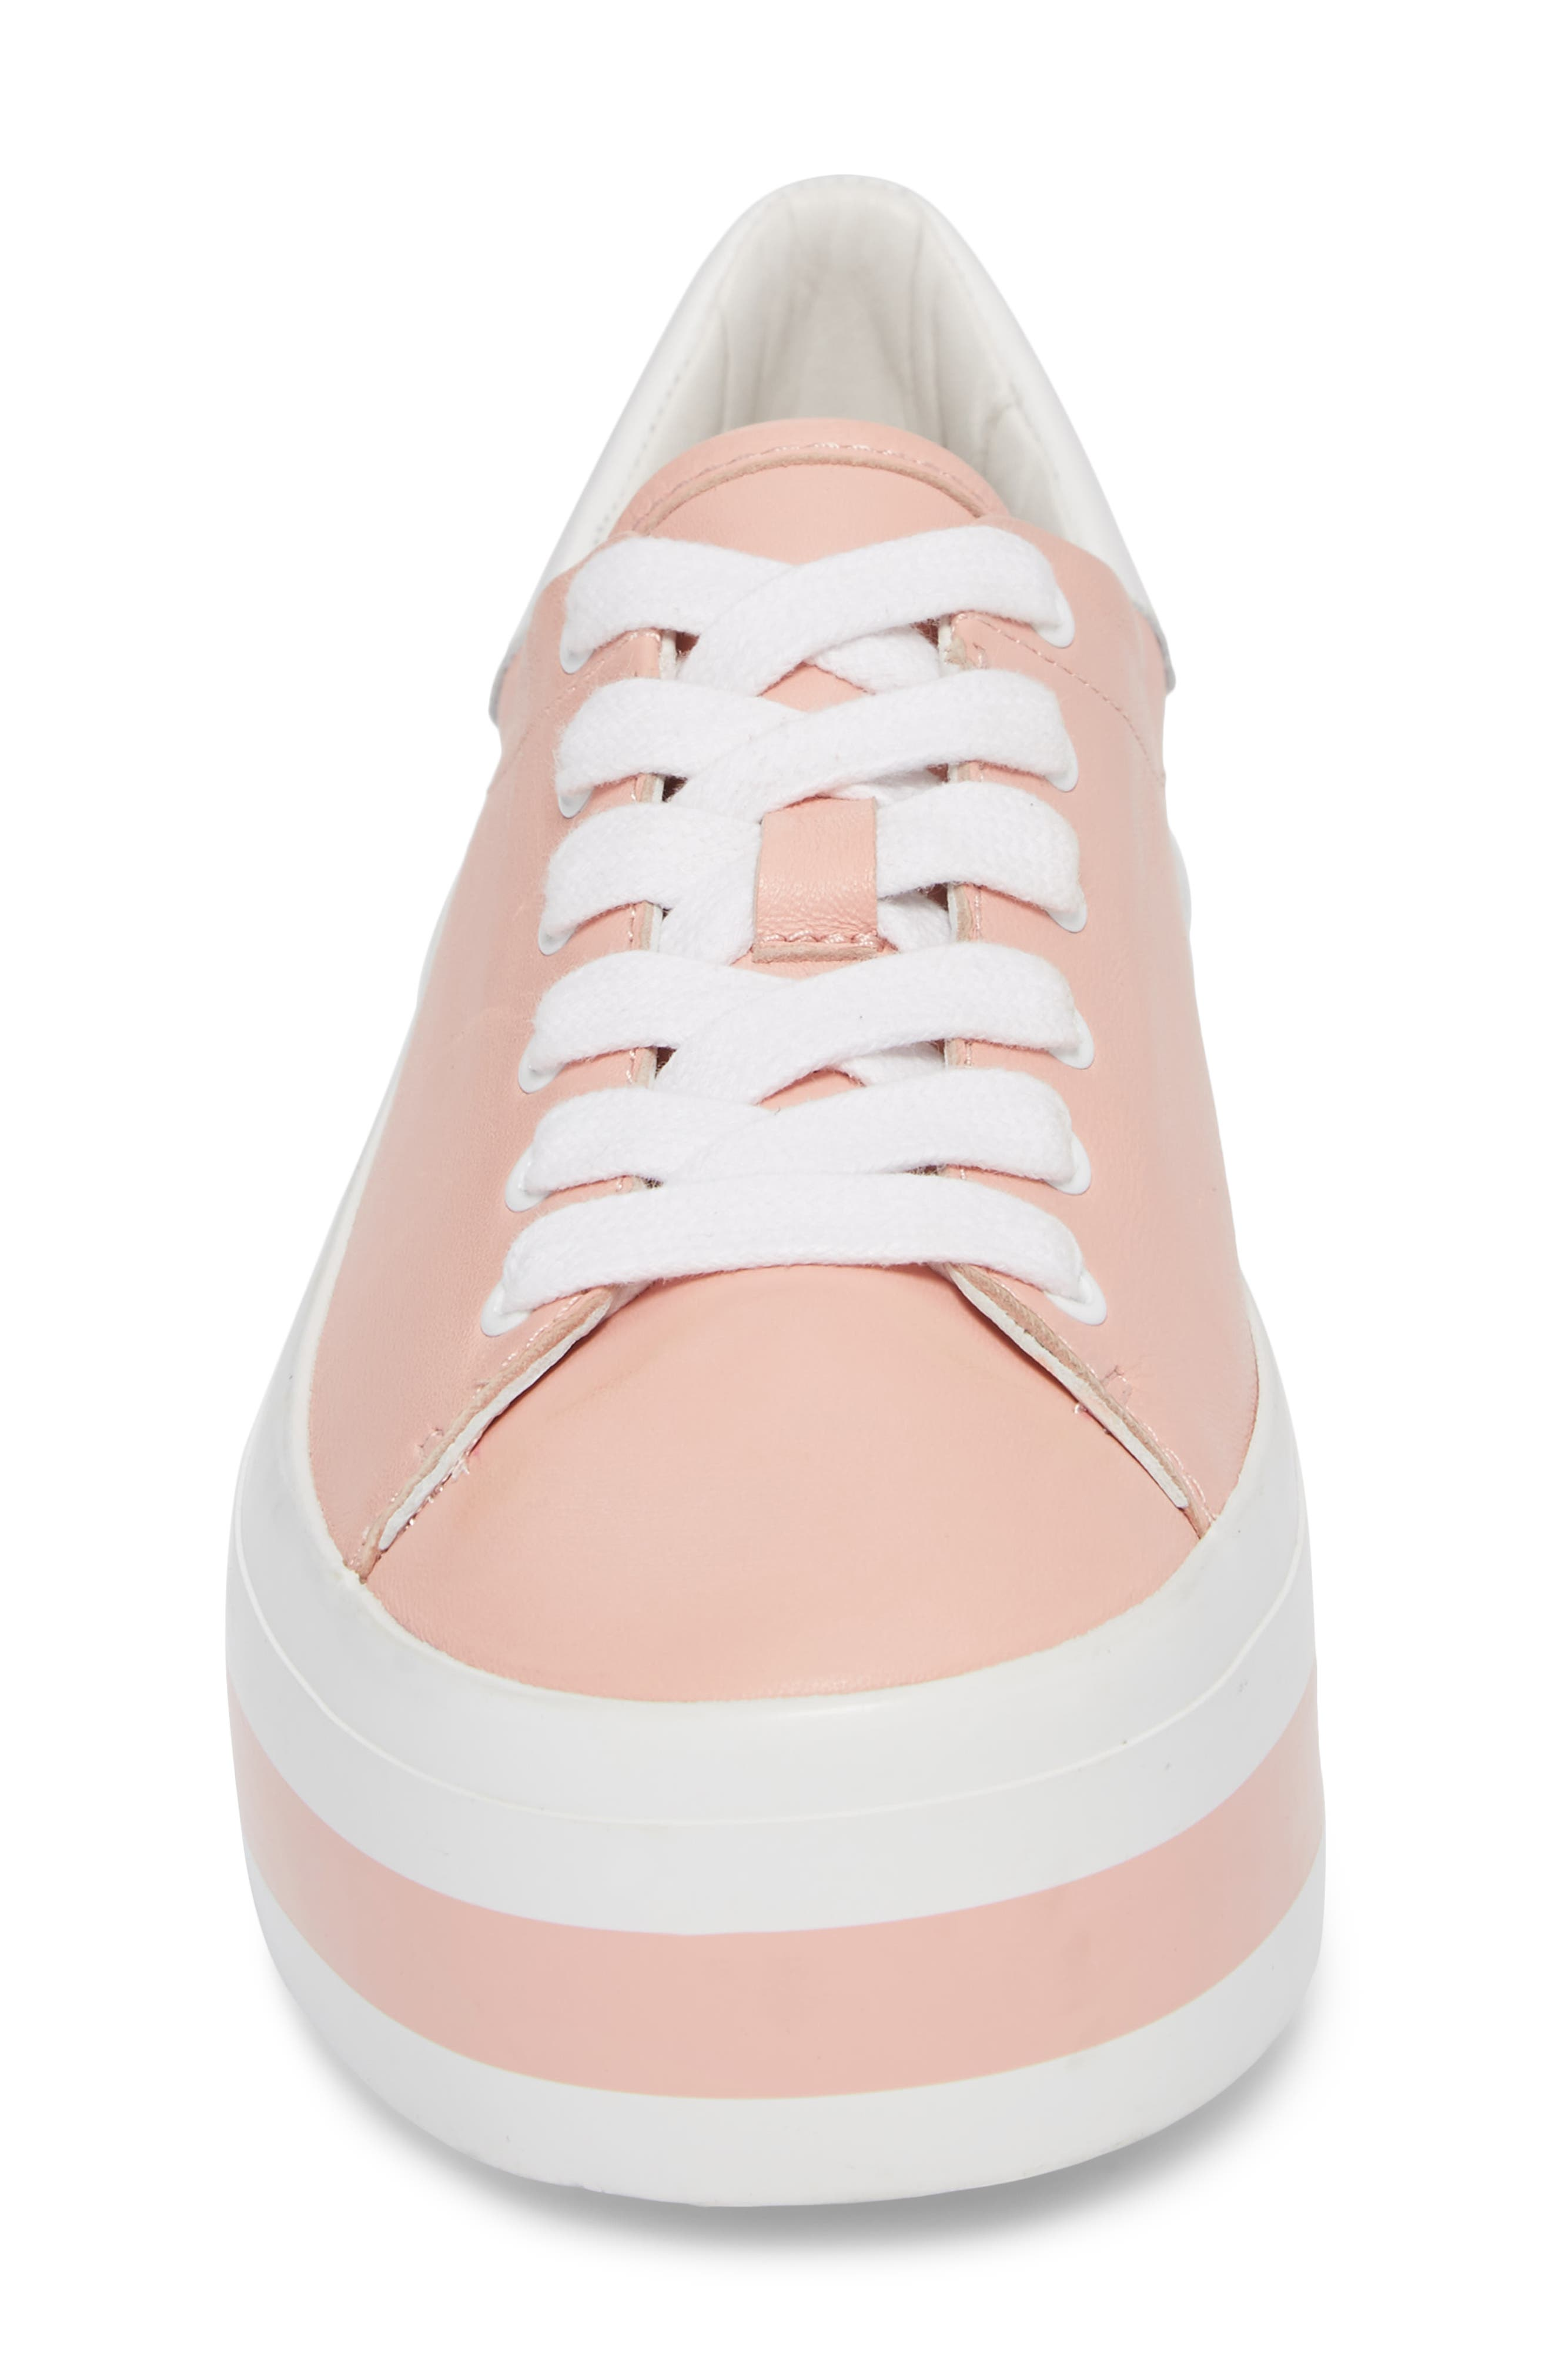 Ezra Flatform Sneaker,                             Alternate thumbnail 5, color,                             Perfect Pink / Pure White